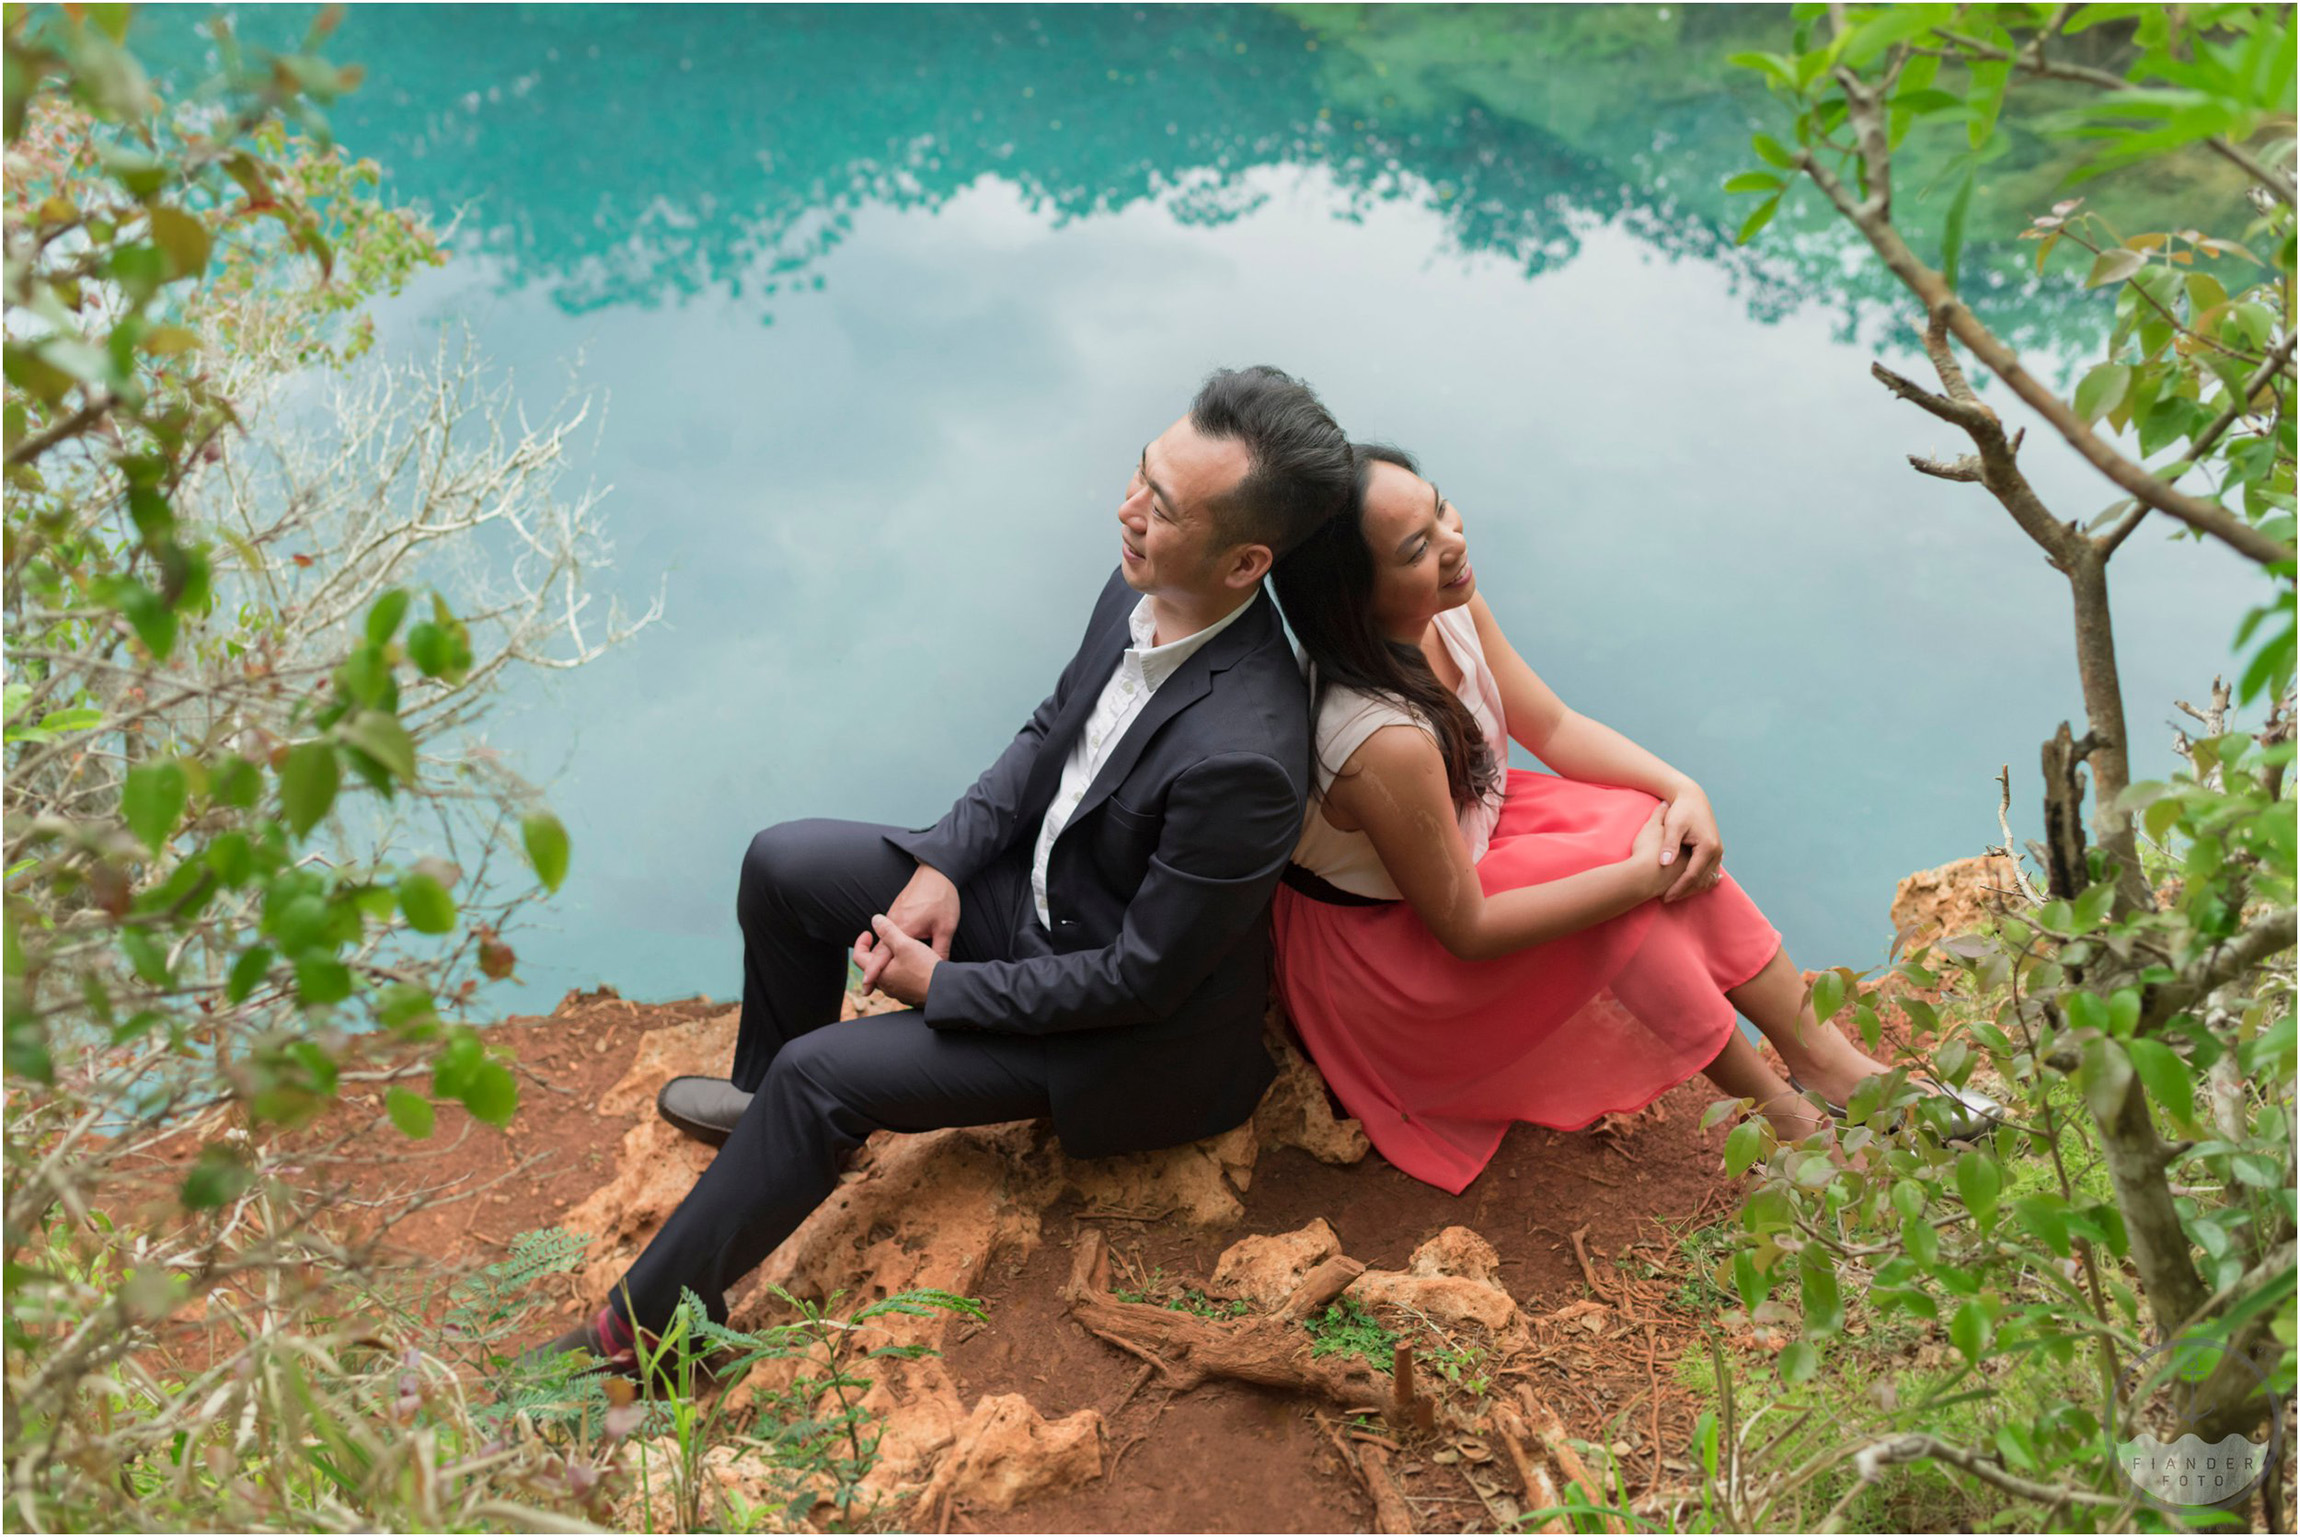 ©FianderFoto_Bermuda Engagement Photographer_Tom Moores Jungle_Owen_Chanson_022.jpg